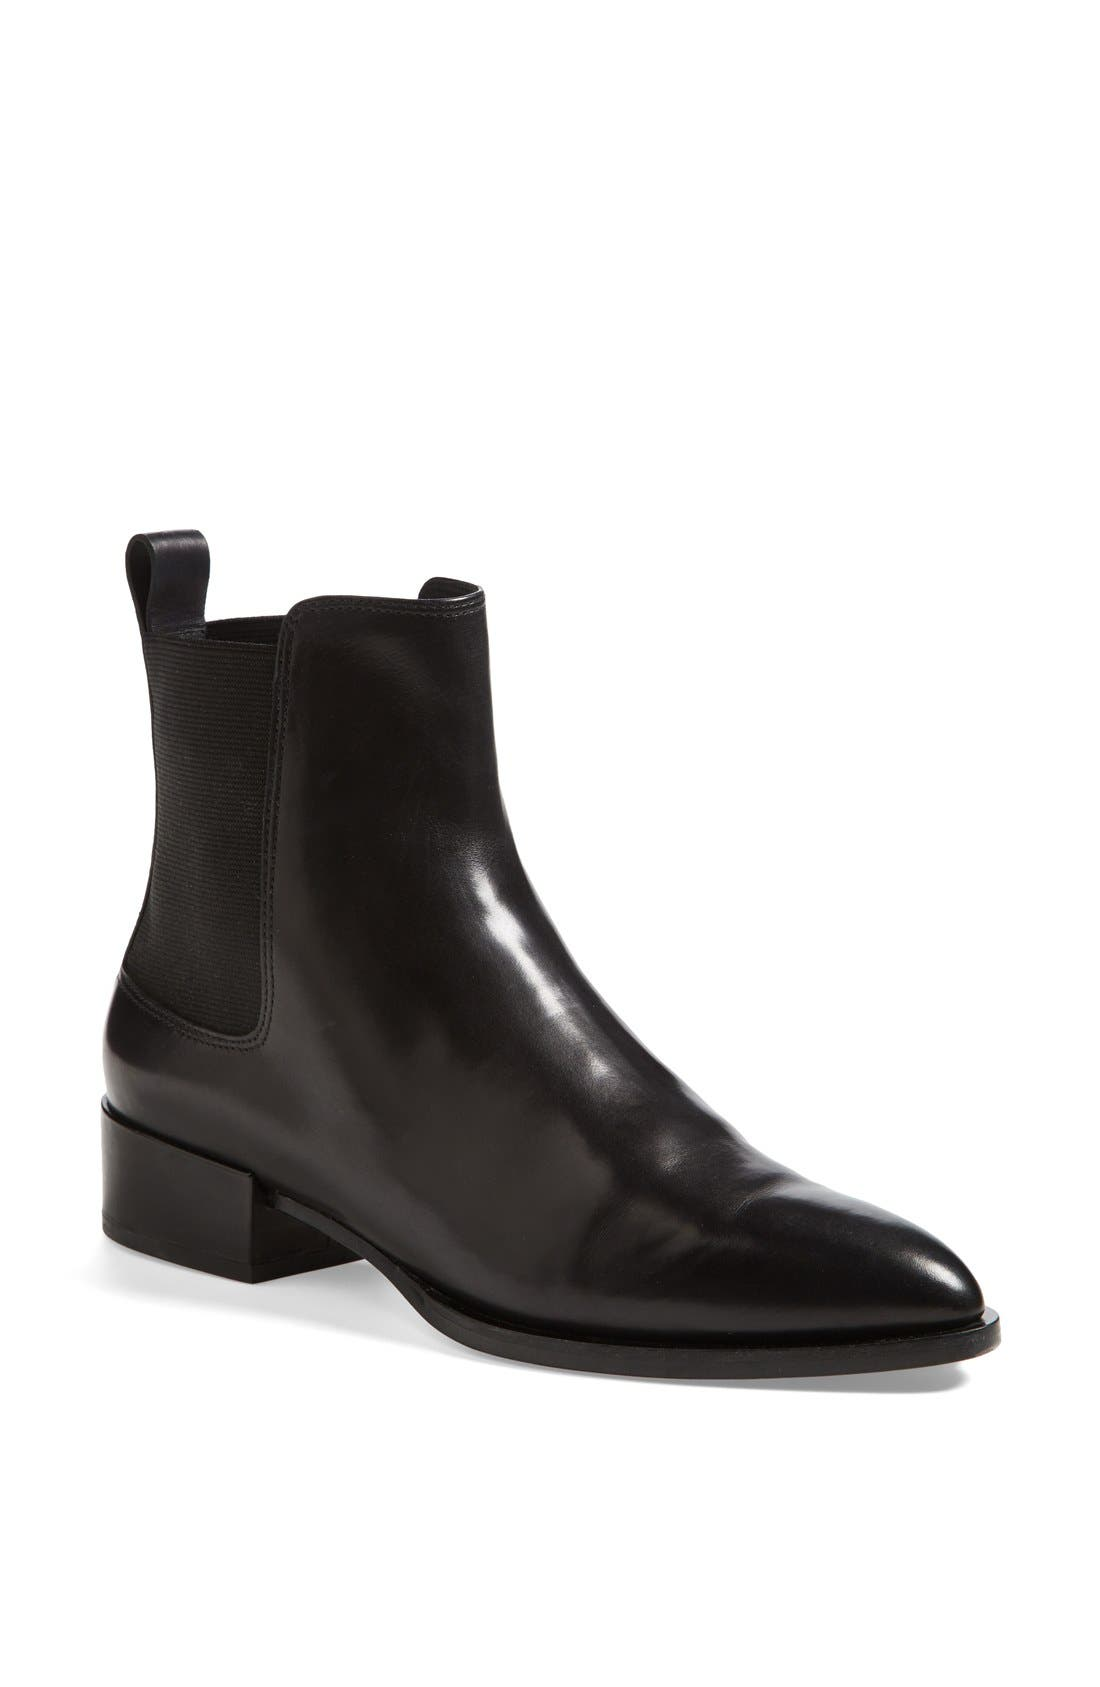 Main Image - Vince 'Yarmon' Almond Toe Calfskin Leather Chelsea Boot